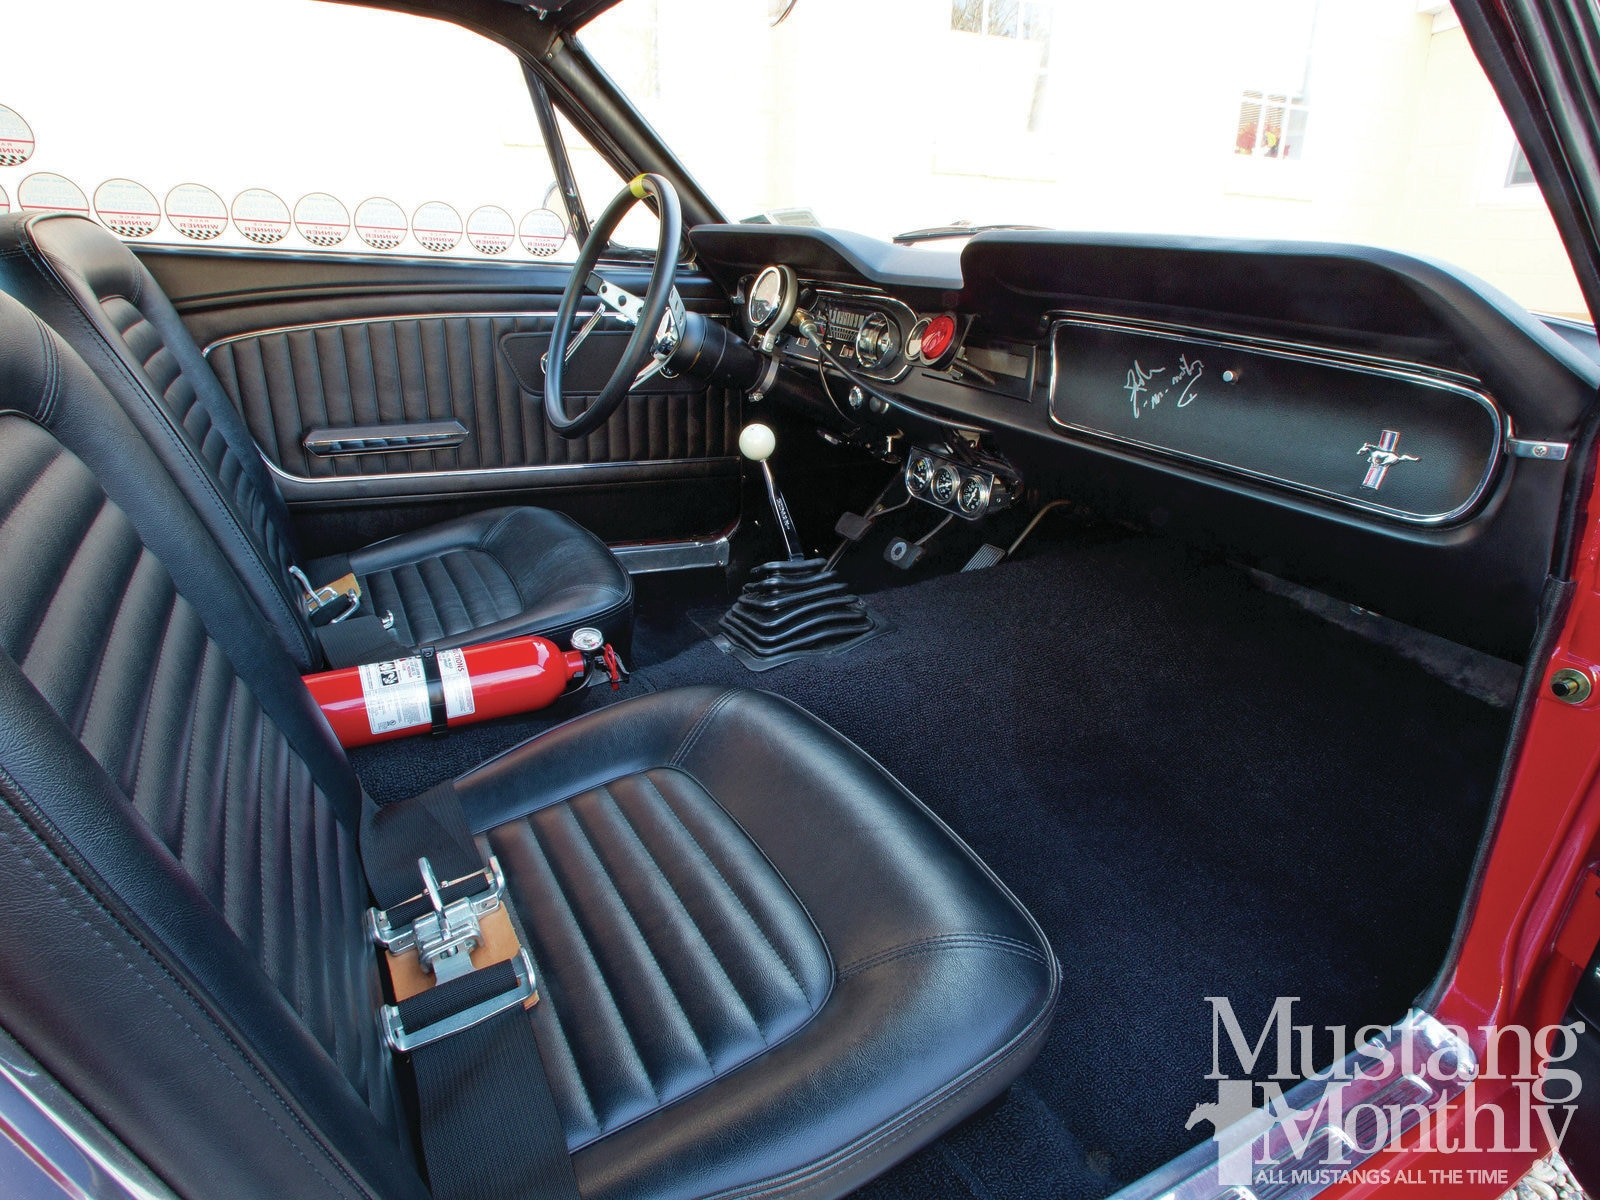 Mump_1205_010_1965_fastback_the_motion_mustang_